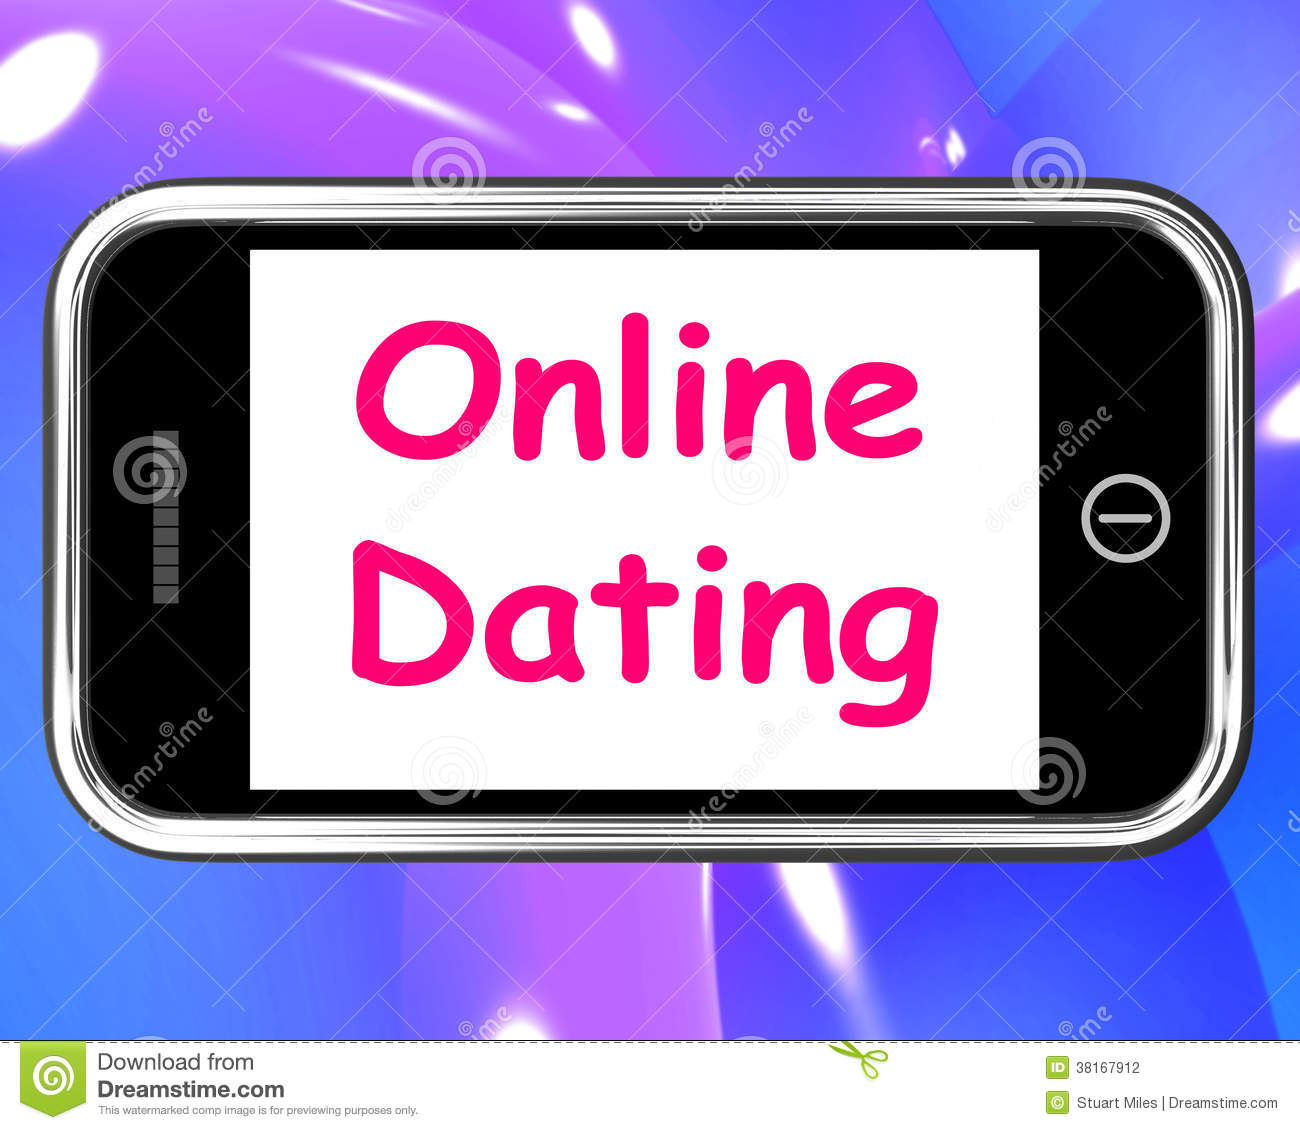 online dating no contact Free online dating 100% free dating site, no paid services.